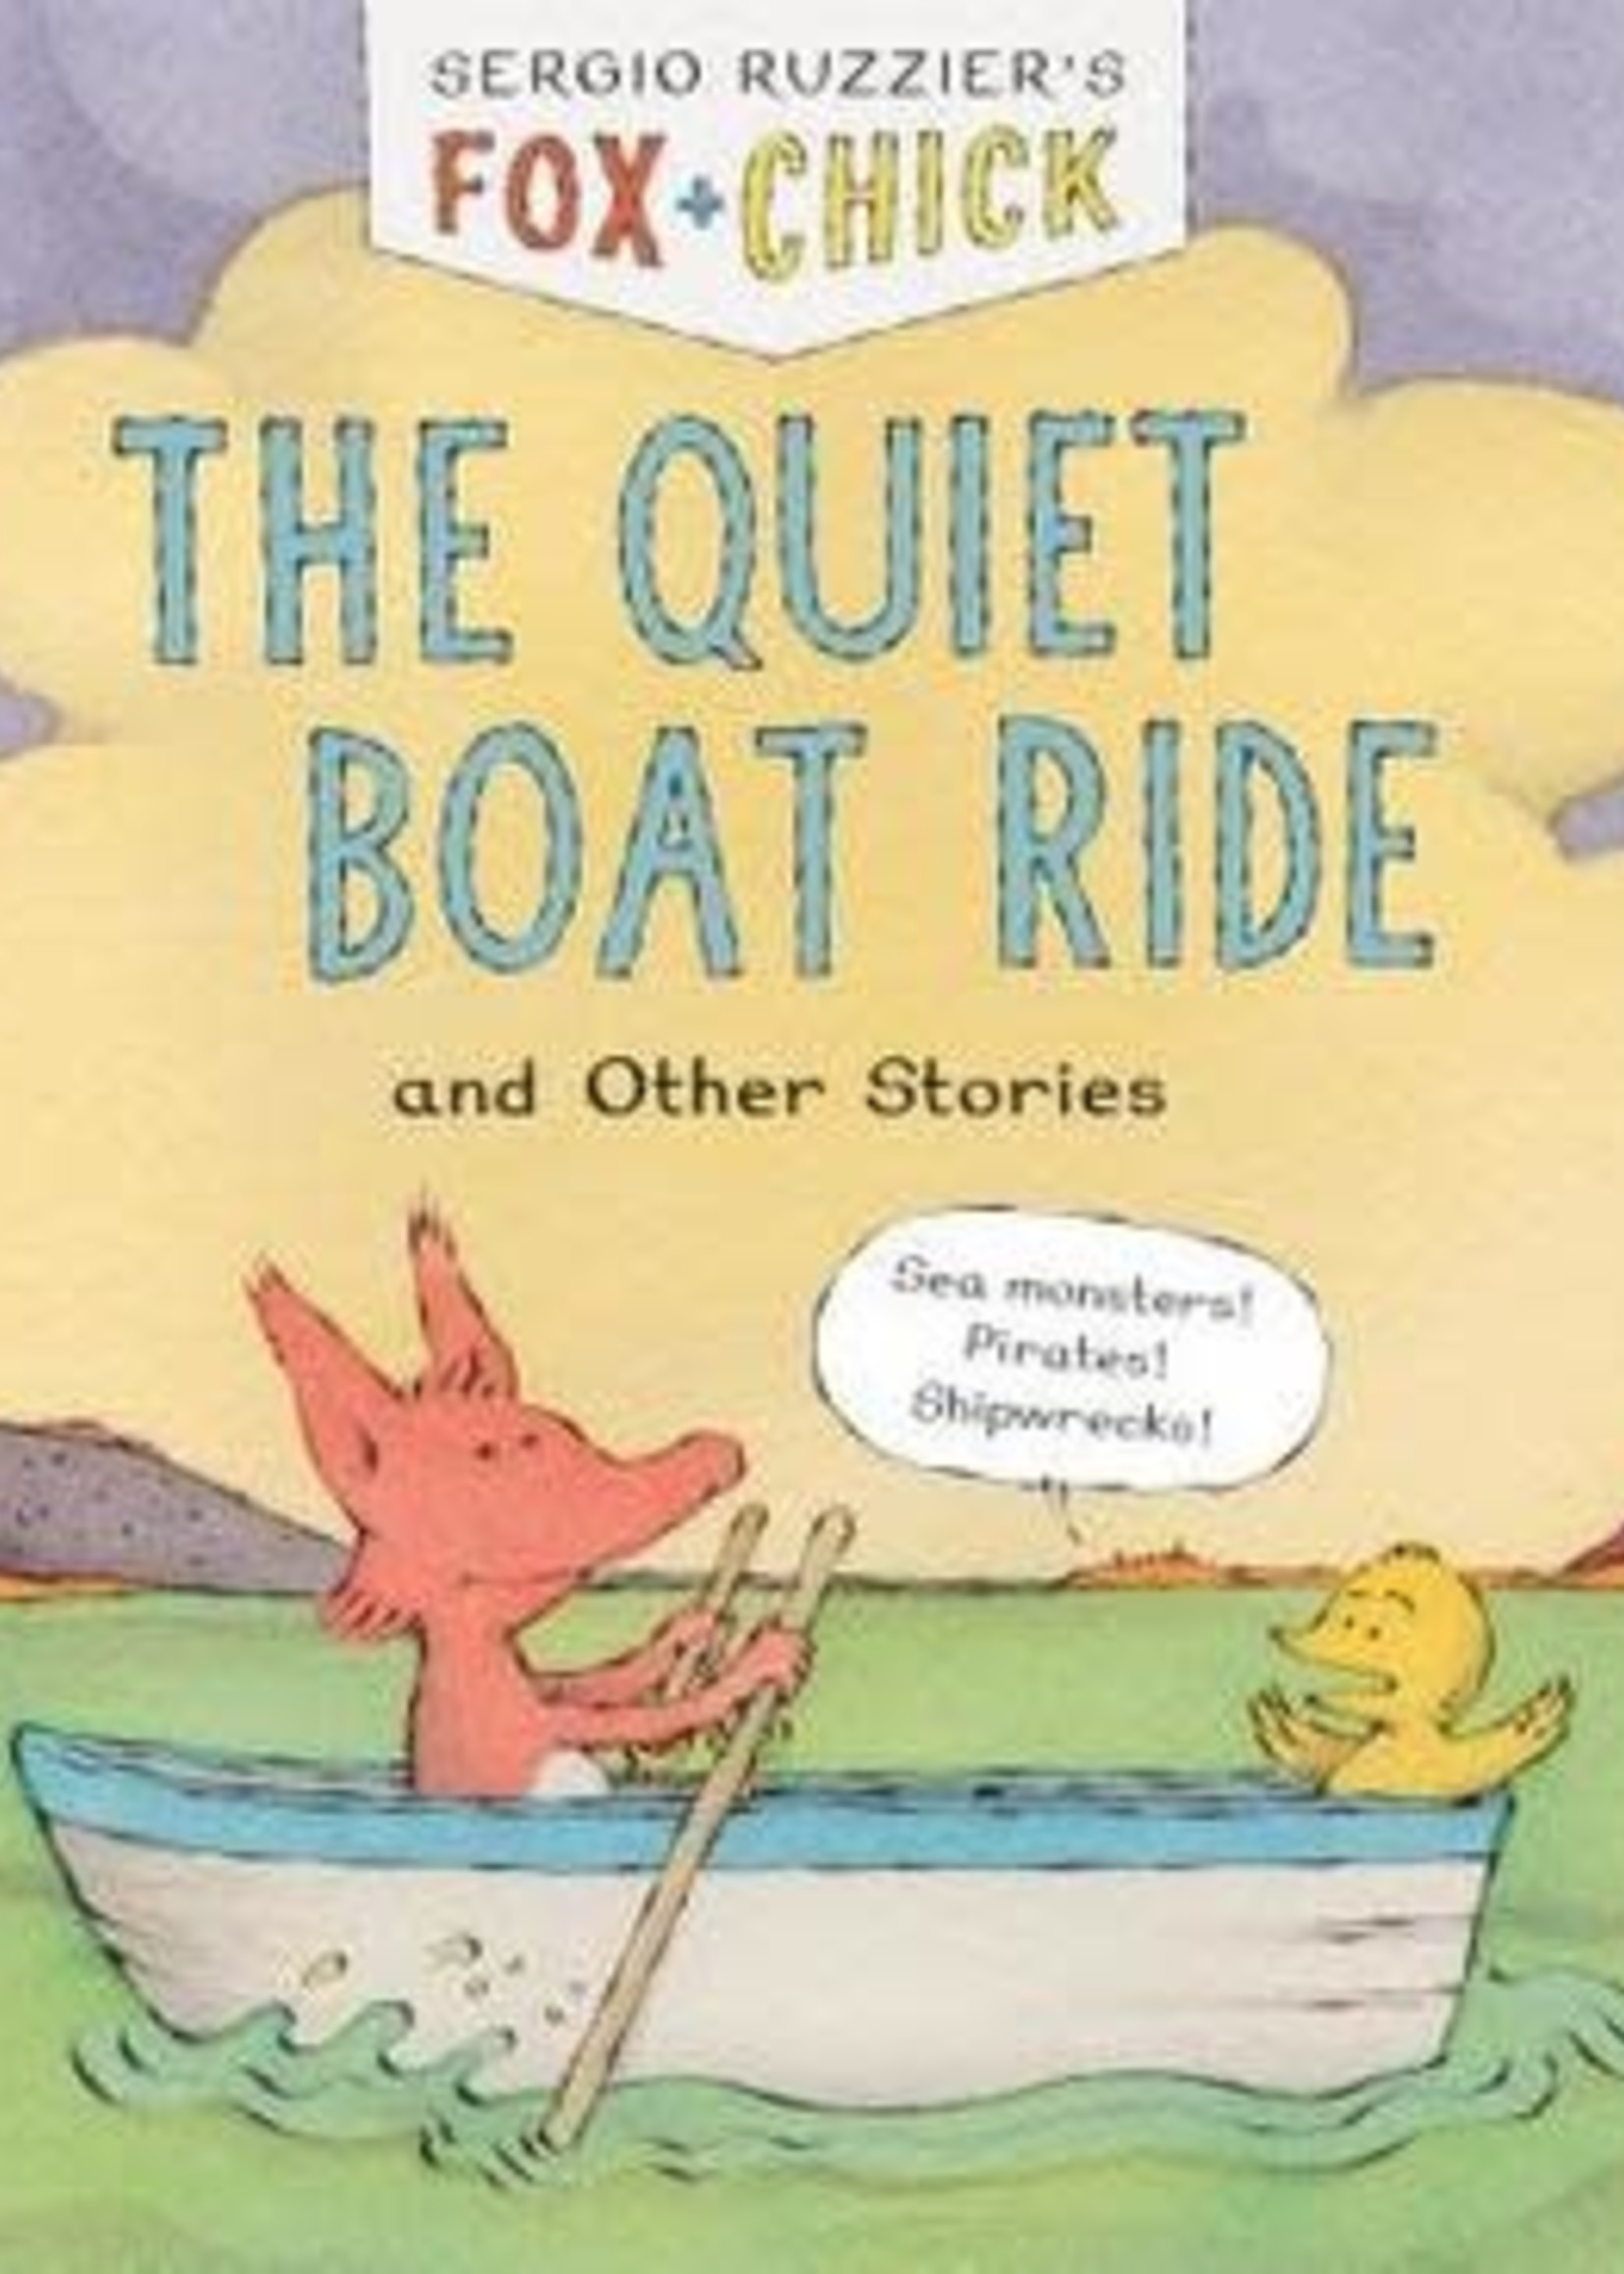 The Quiet Boat Ride and Other Stories by Sergio Ruzzier